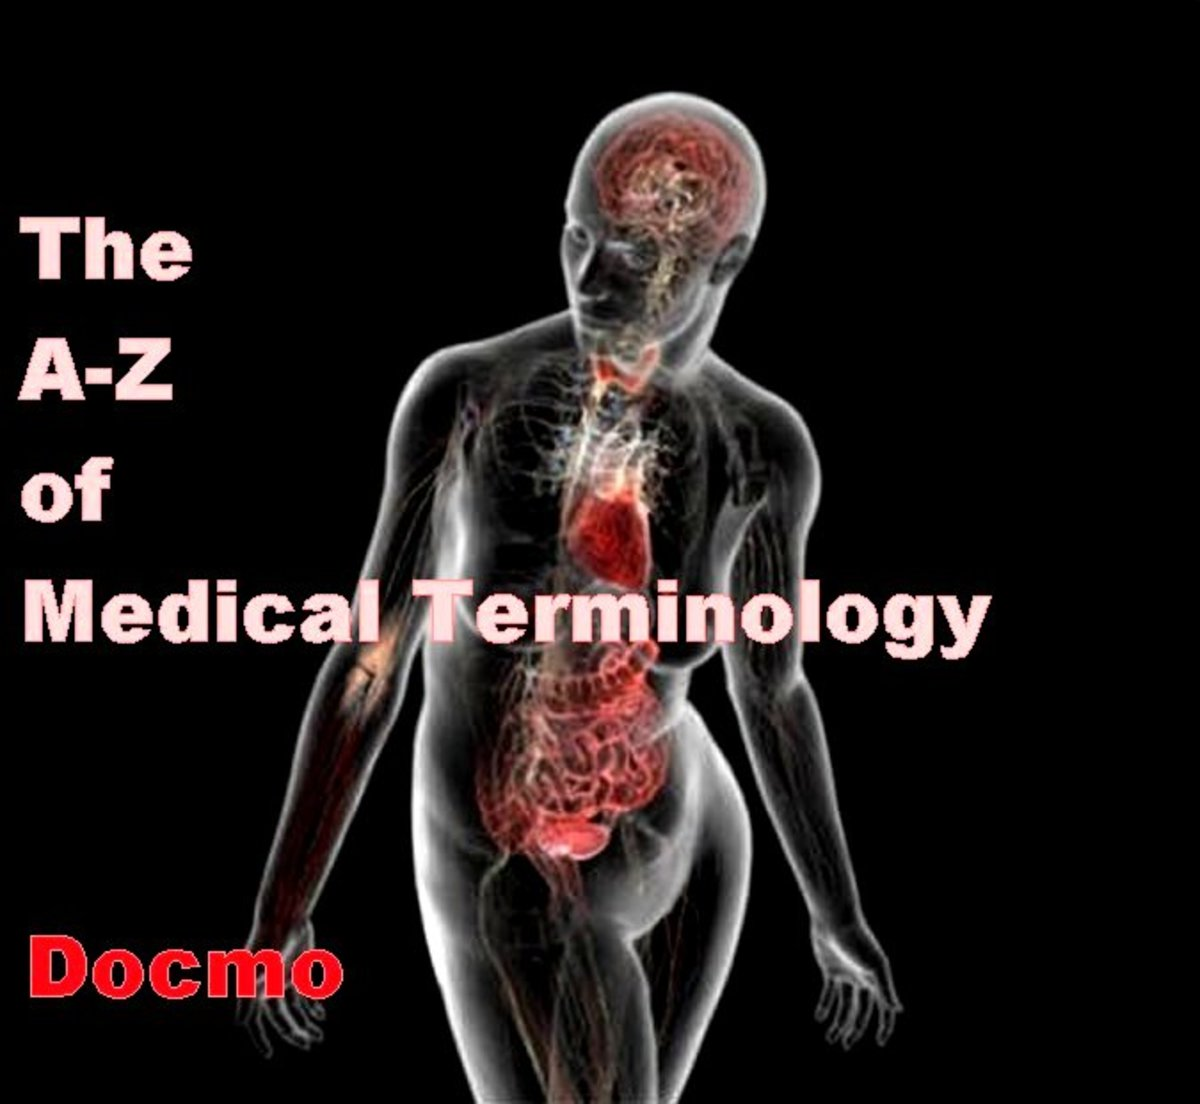 A-Z of Medical Terminology 1 - Know Your Roots